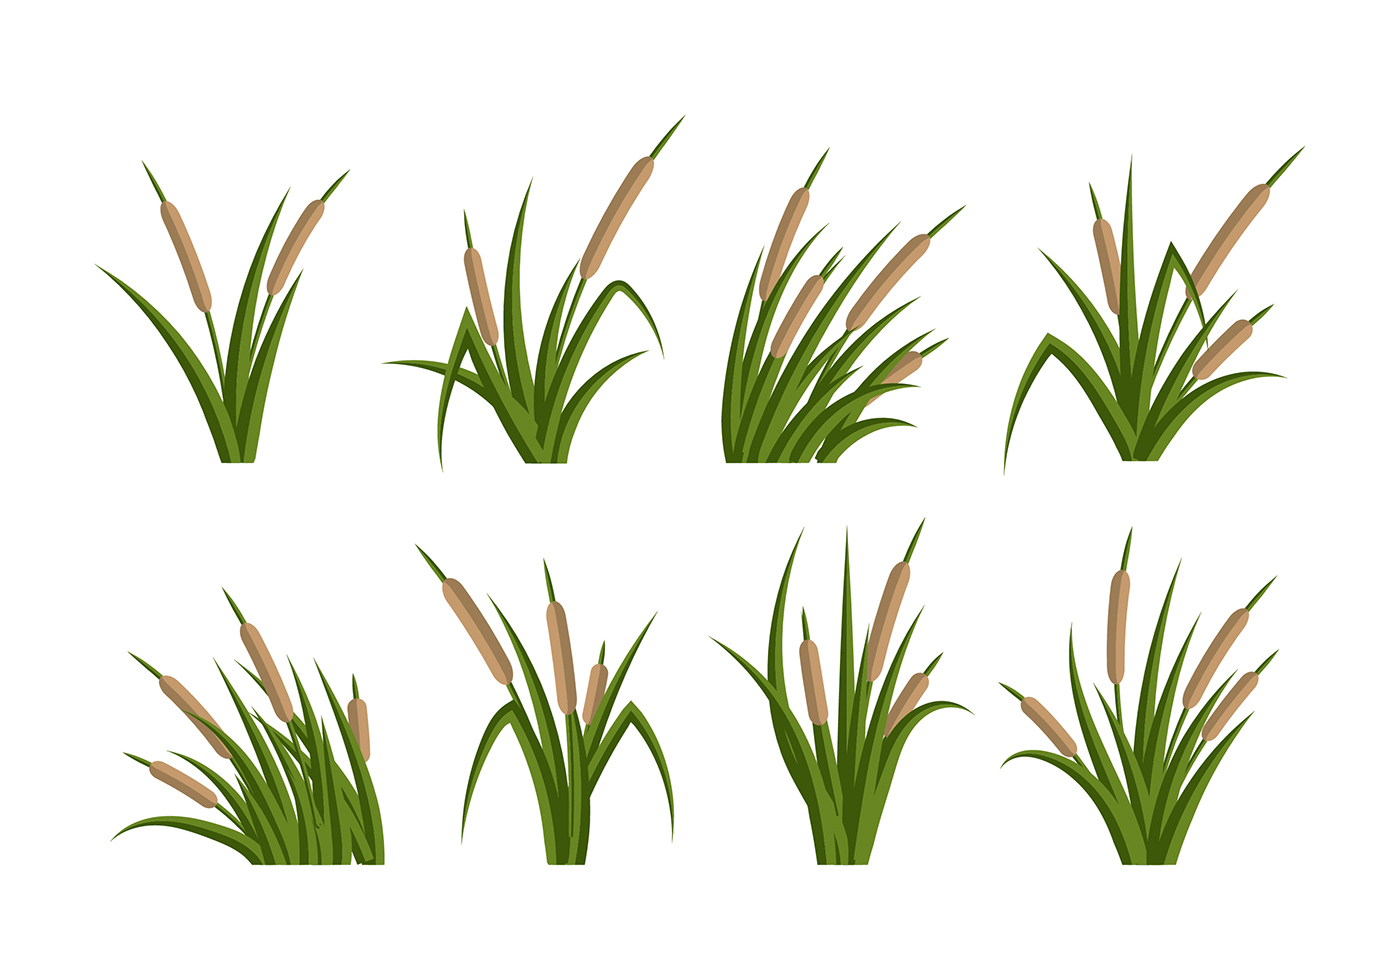 cattails vector 349 free downloads rh vecteezy com Cattail Coloring Pages Cattails Vector